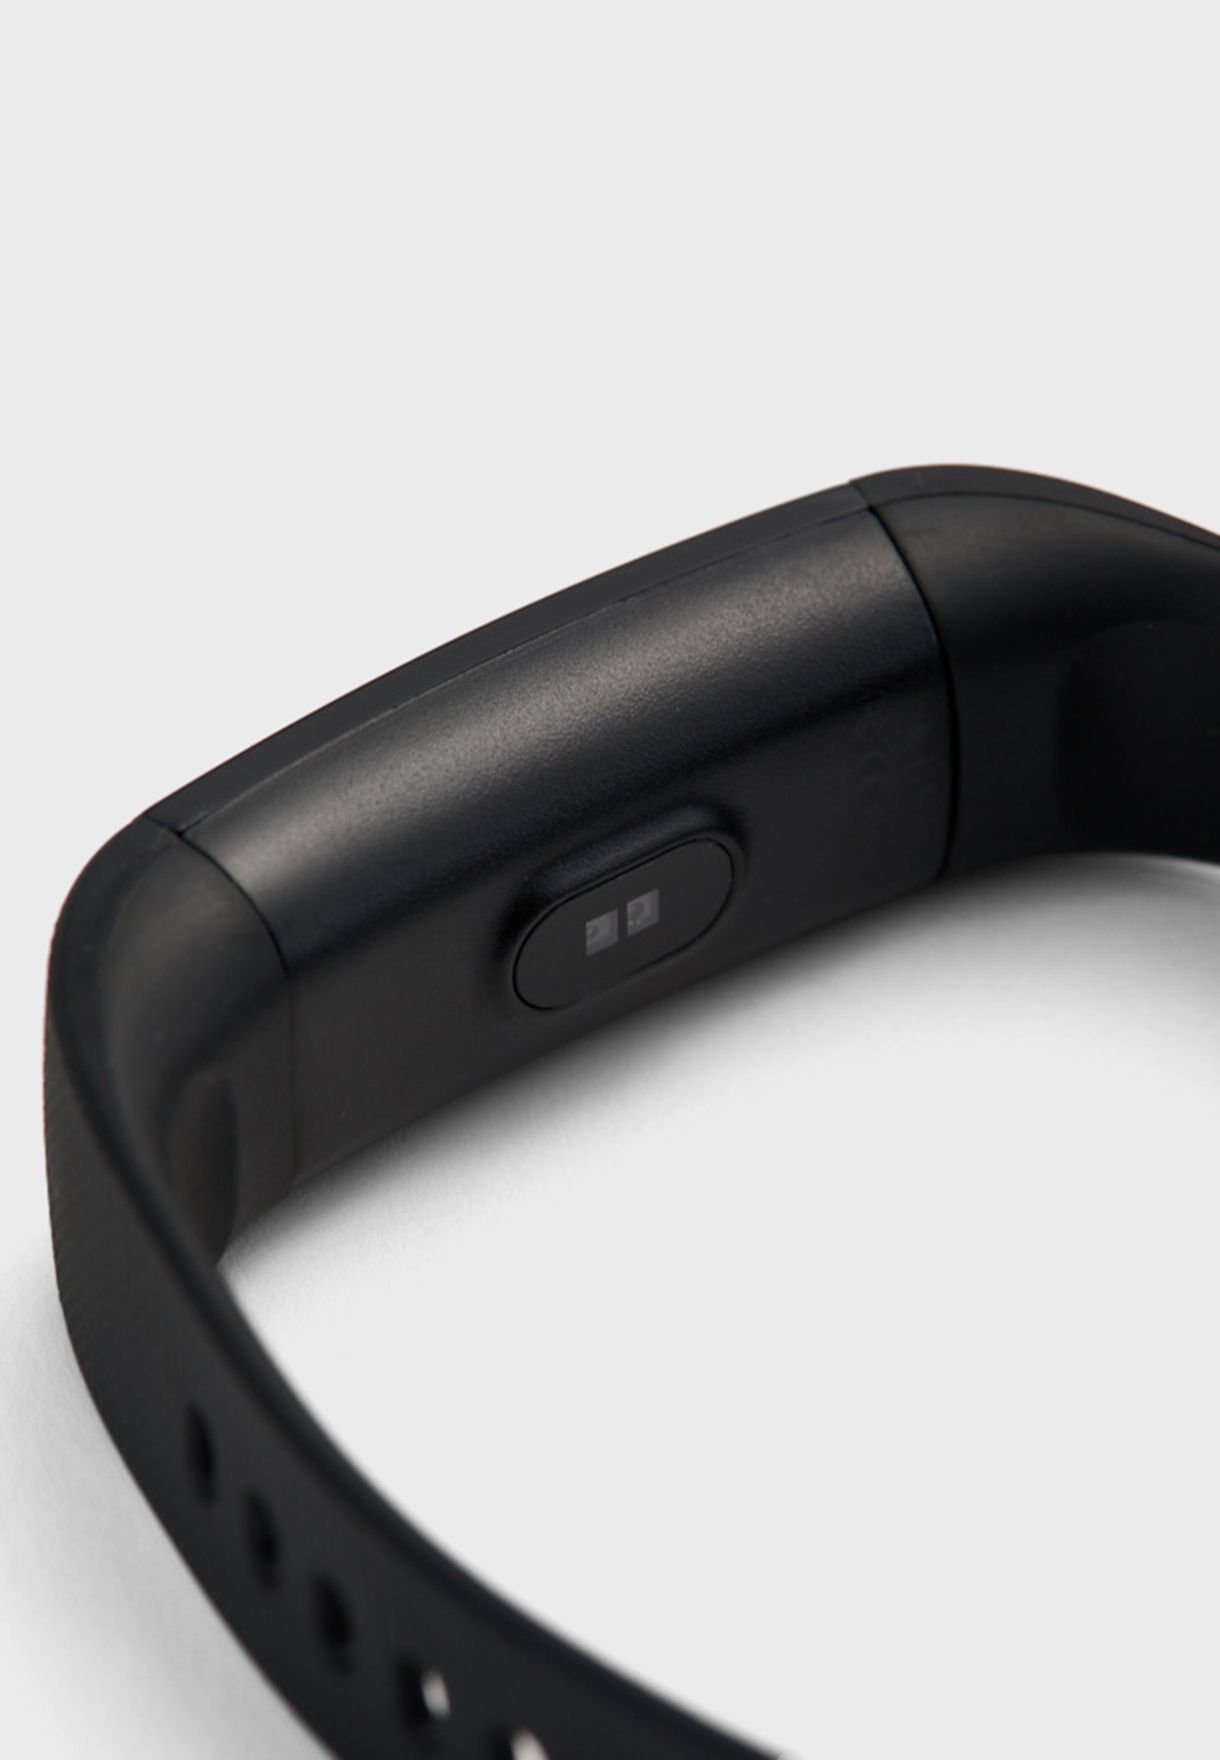 Digital Smart Band